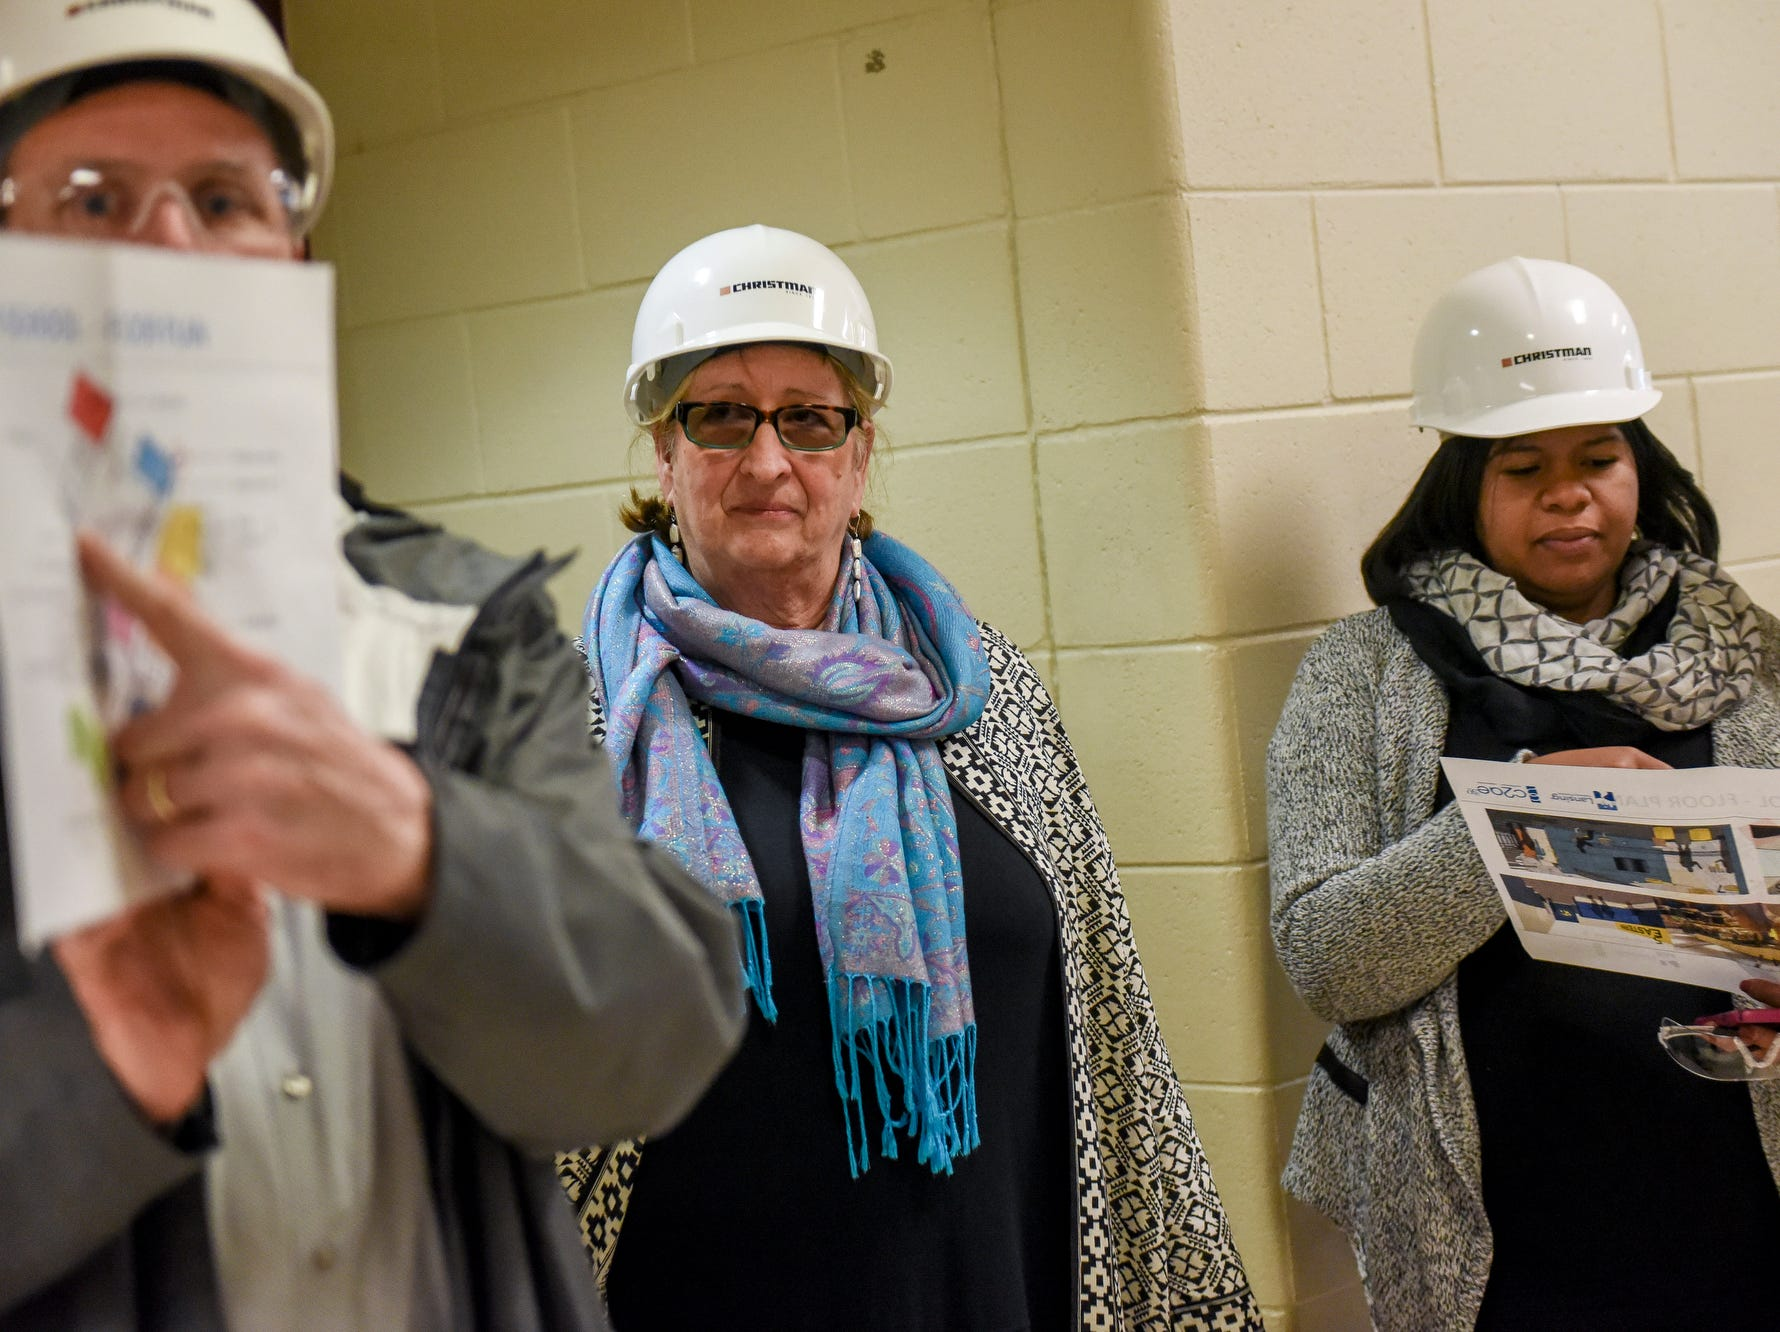 Lansing School District Superintendent Yvonne Caamal Canul, center, and Lansing School District Board President Rachel Lewis, right, listen as Bob McGraw, building group leader for C2AE, talks during a tour of the construction of the new Eastern High School on Thursday, March 14, 2019, in Lansing. The project is being funded by the district's successful Pathway Promise millage, which was passed by voters in 2016. The building was formerly Pattengill Academy.